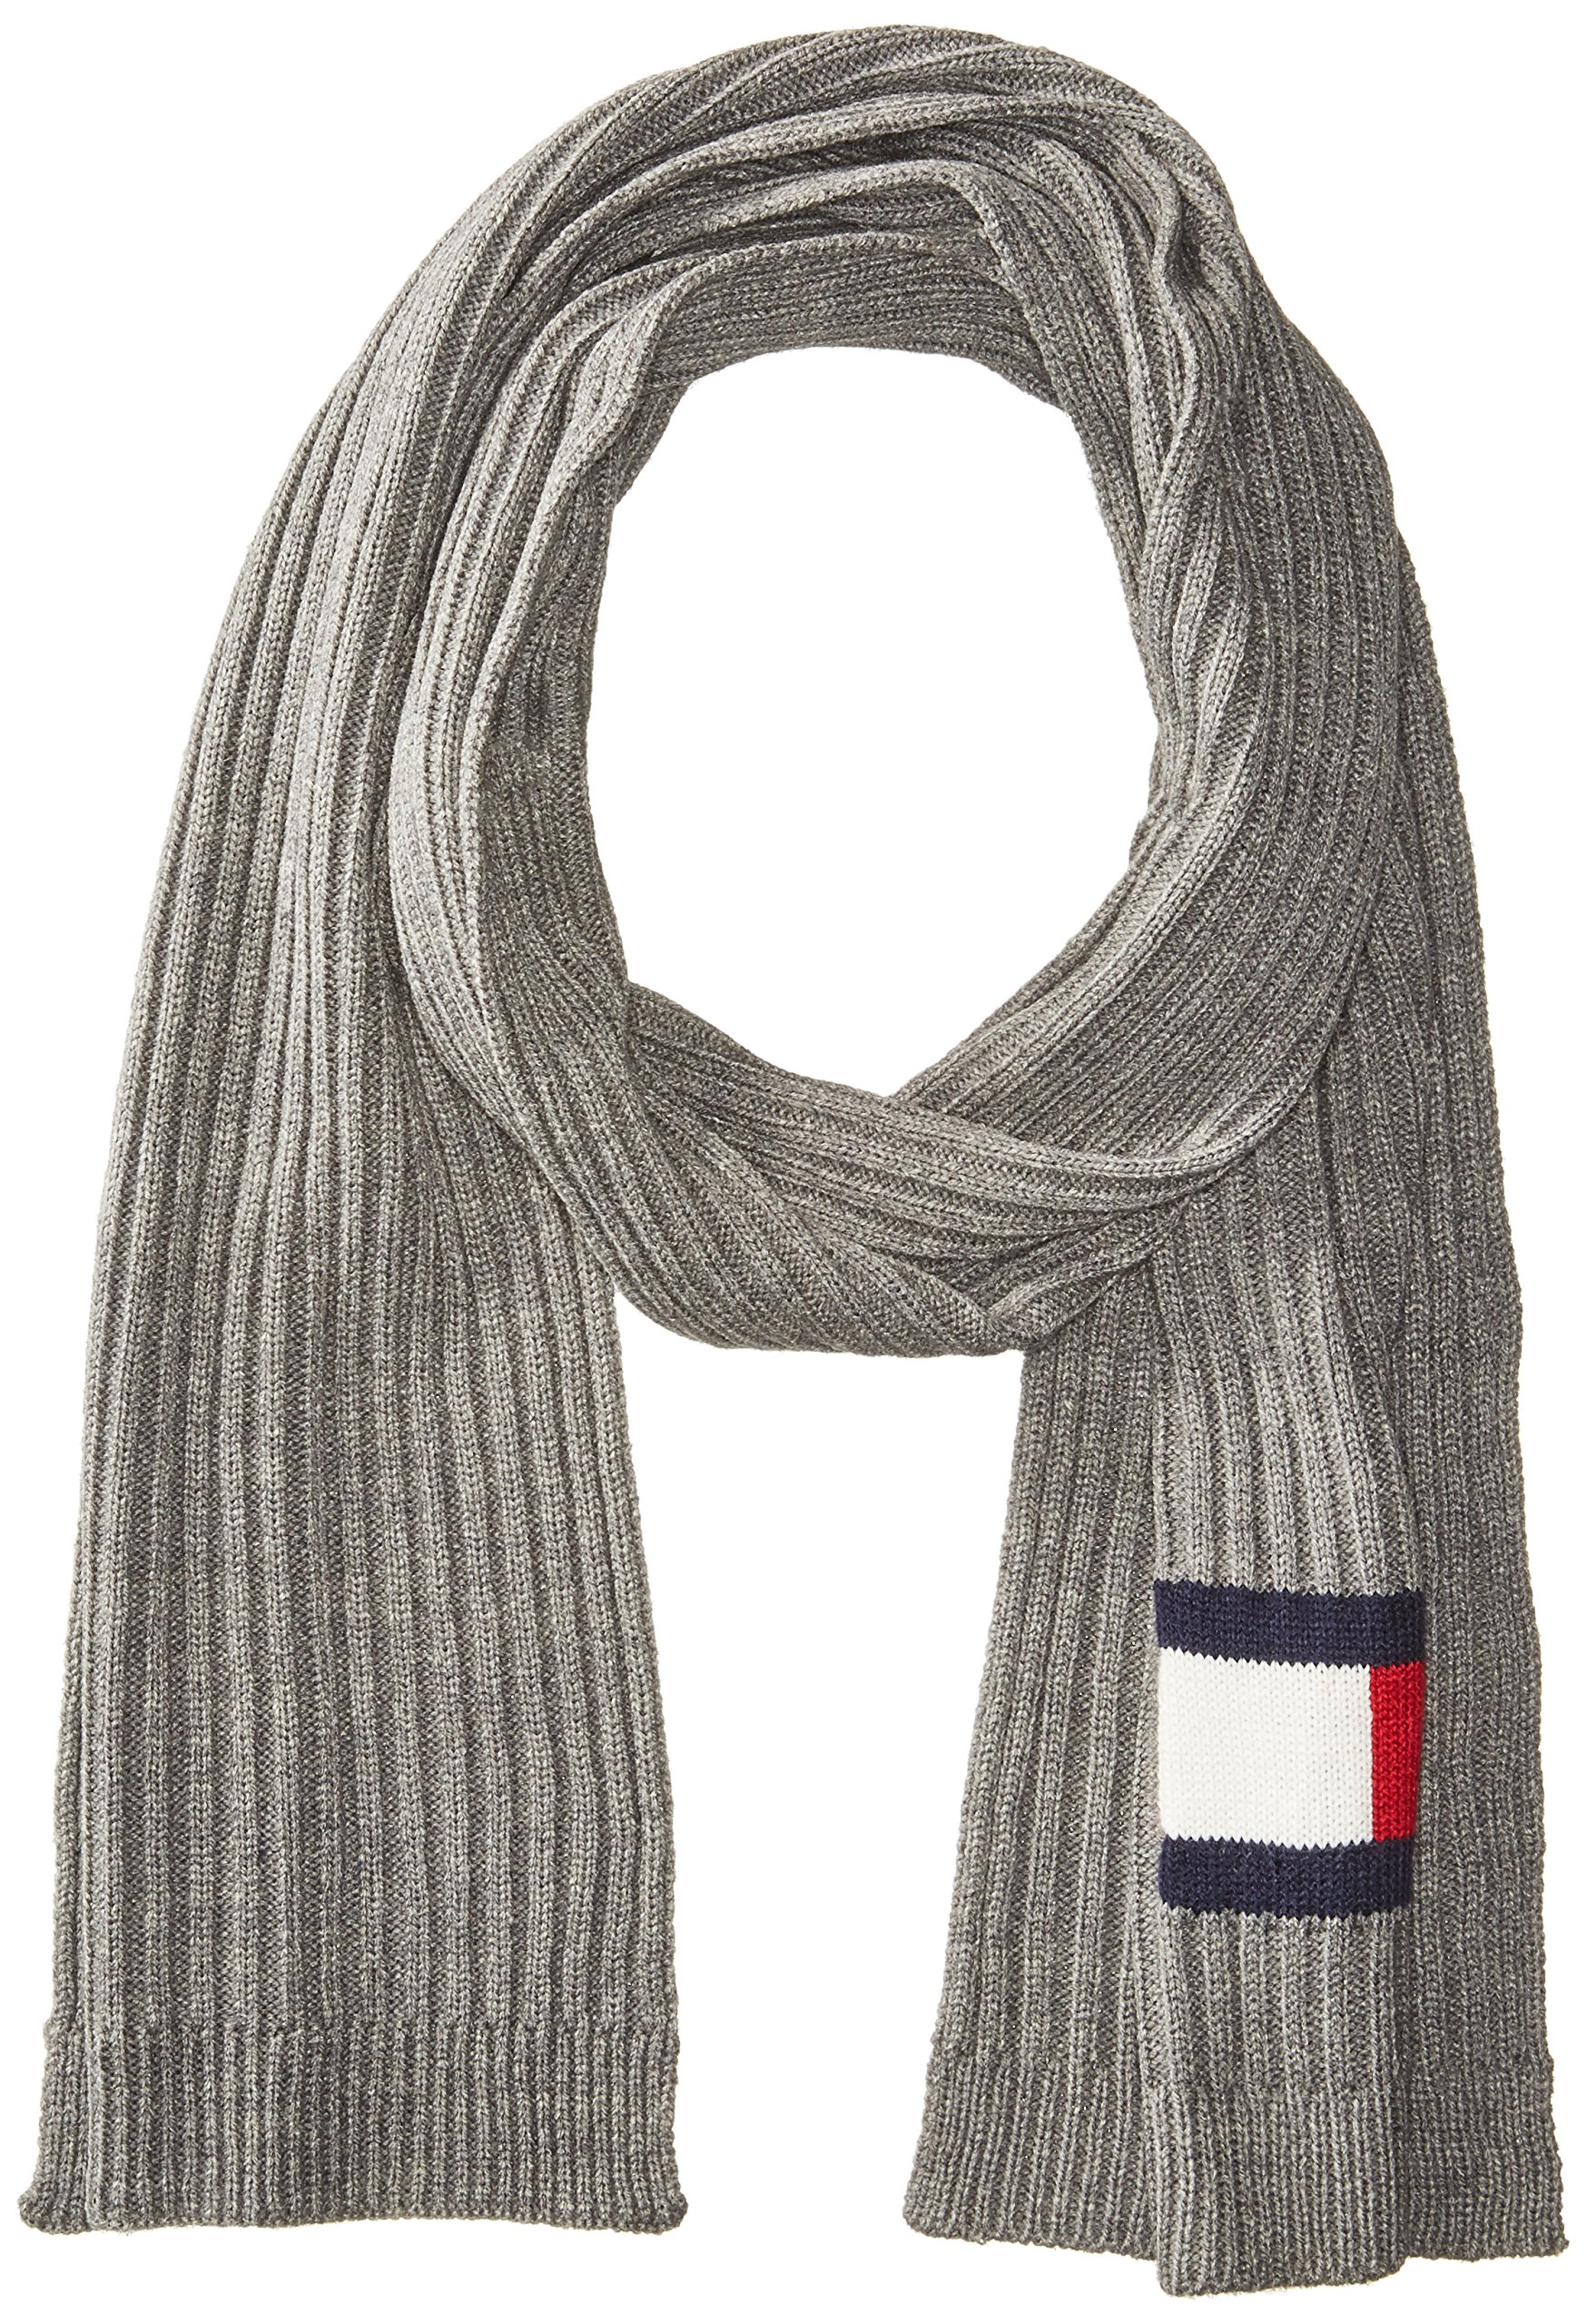 Tommy Hilfiger Men's Winter Scarf, Silver, OS